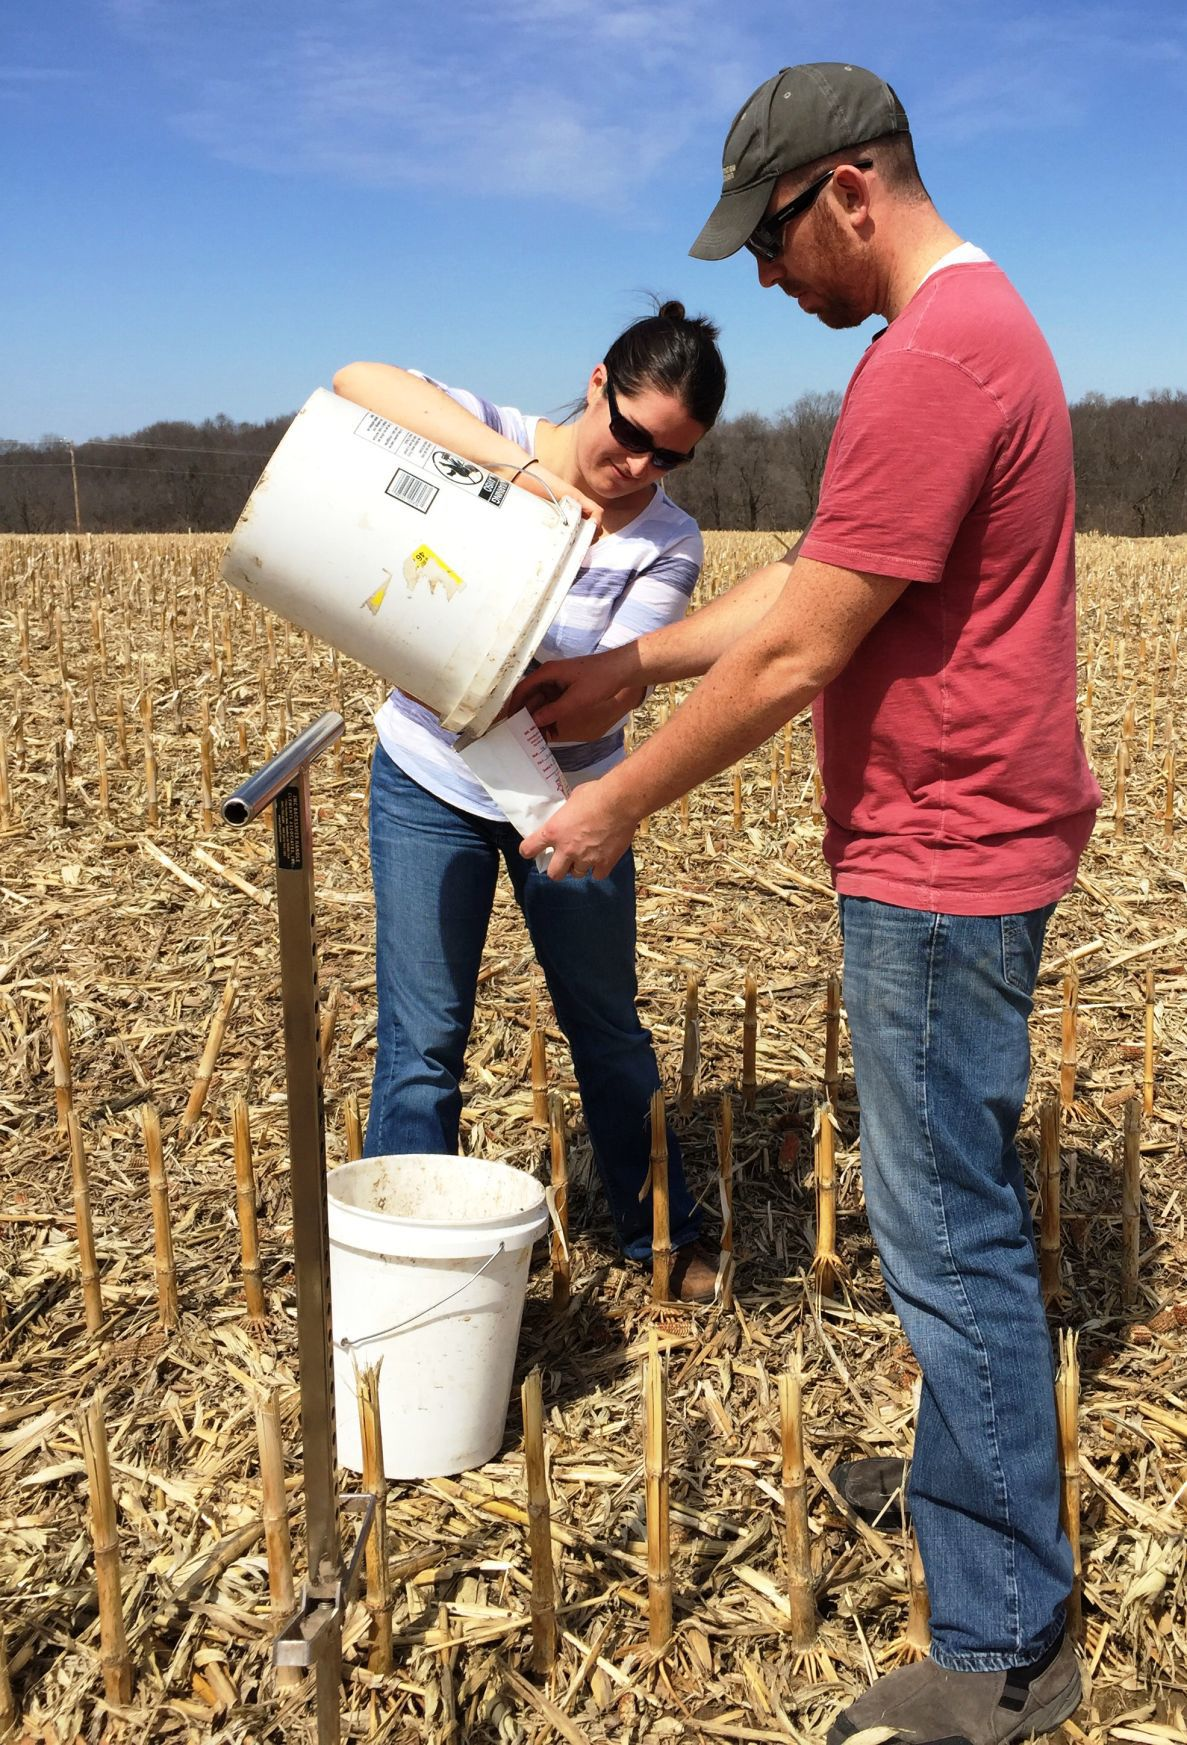 Soil sampling and collection